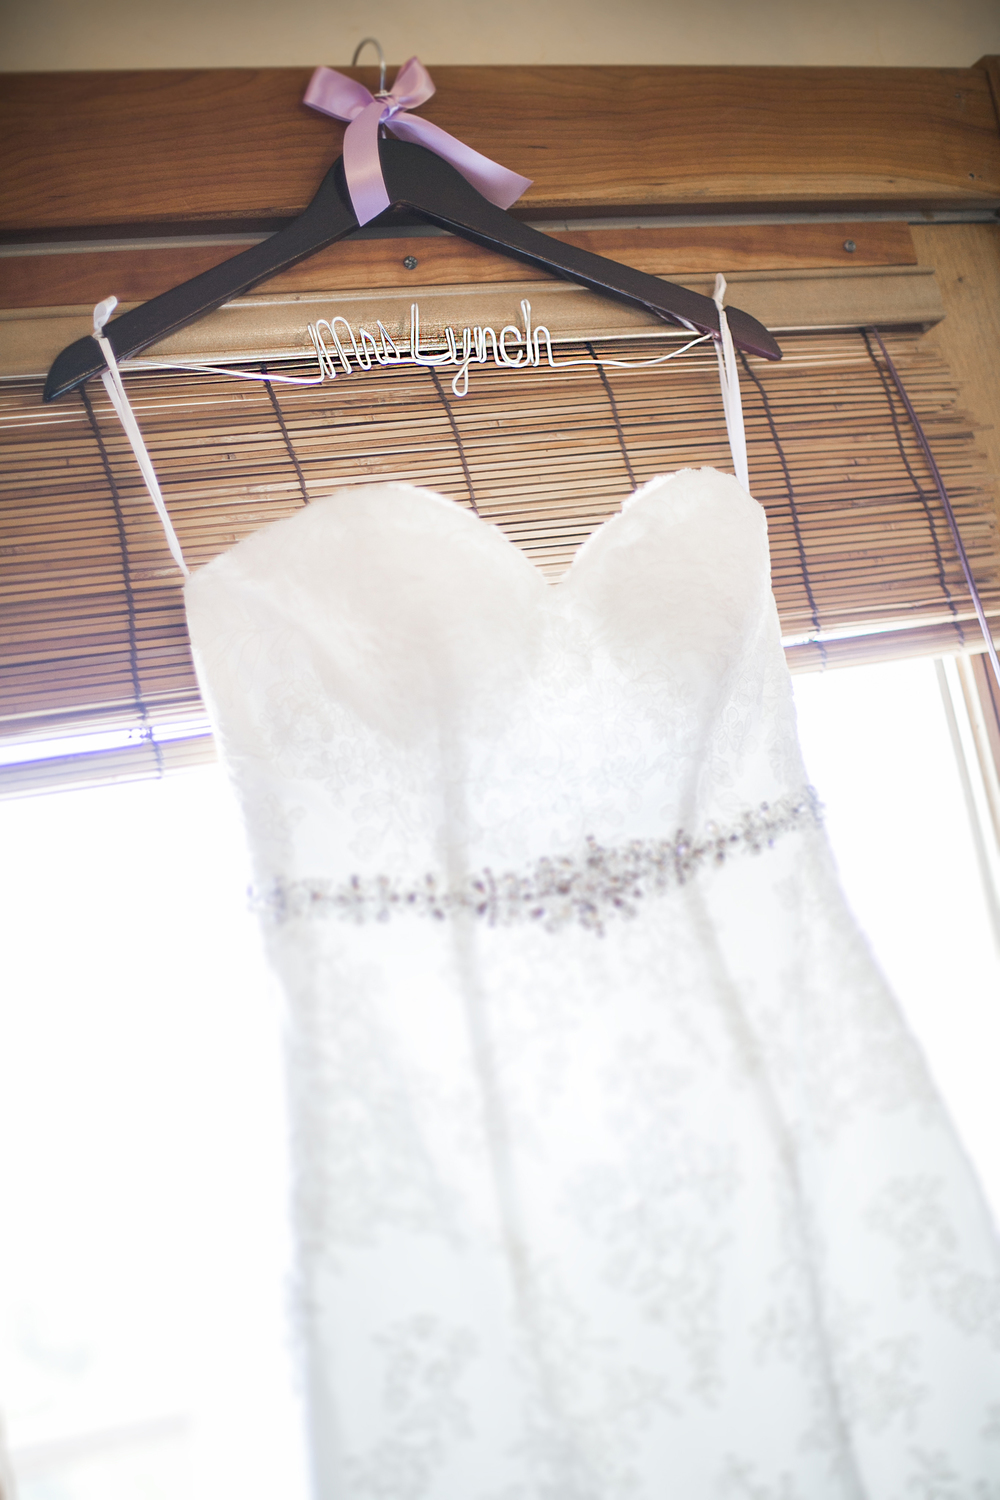 Jaeda-Reed-Wedding-JK-Dress-Hanger.jpg